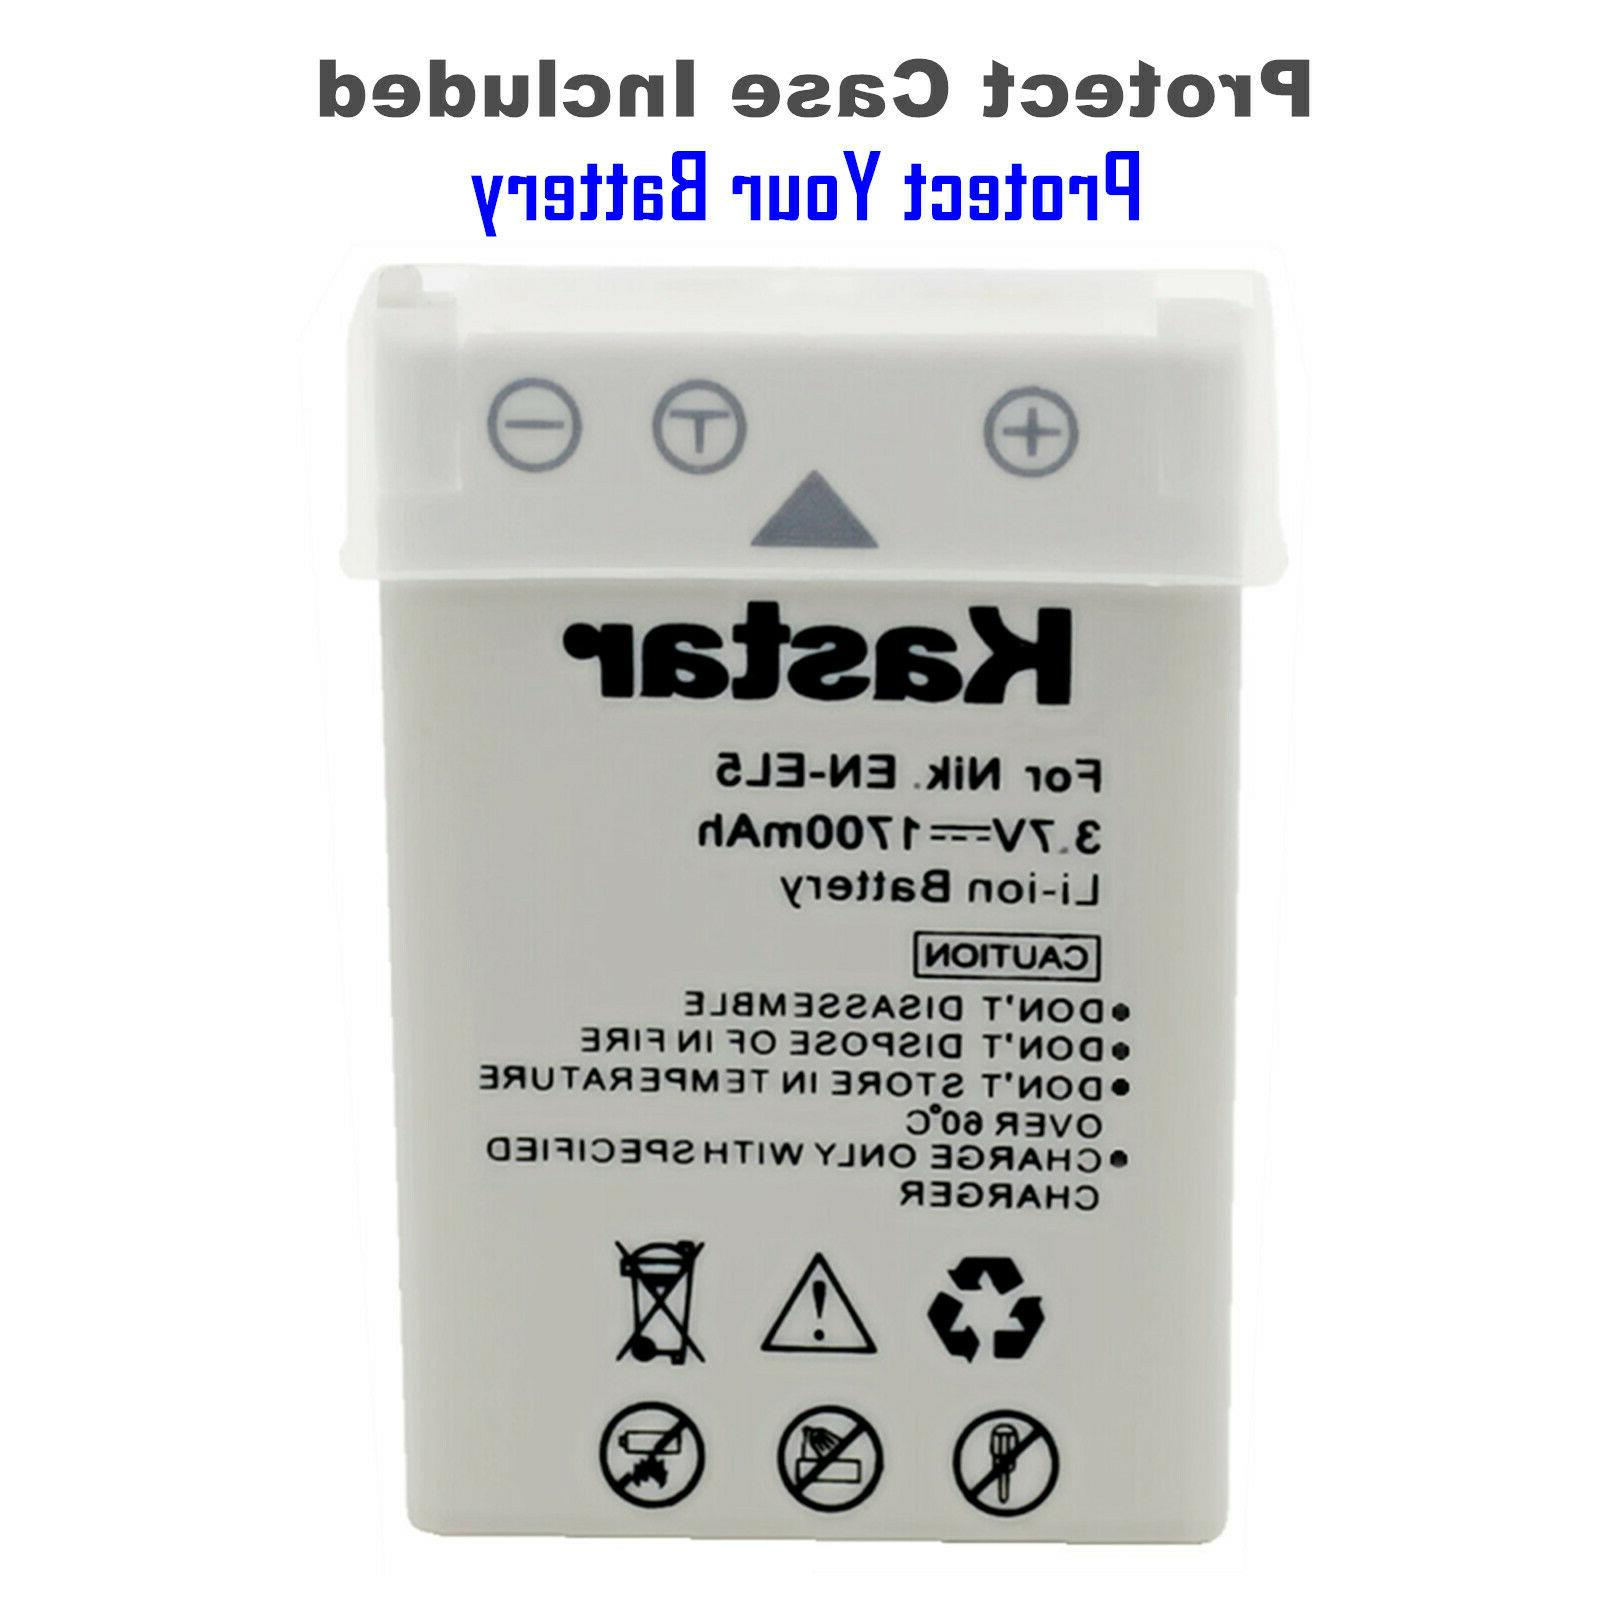 Kastar Charger for & Coolpix P80 Camera